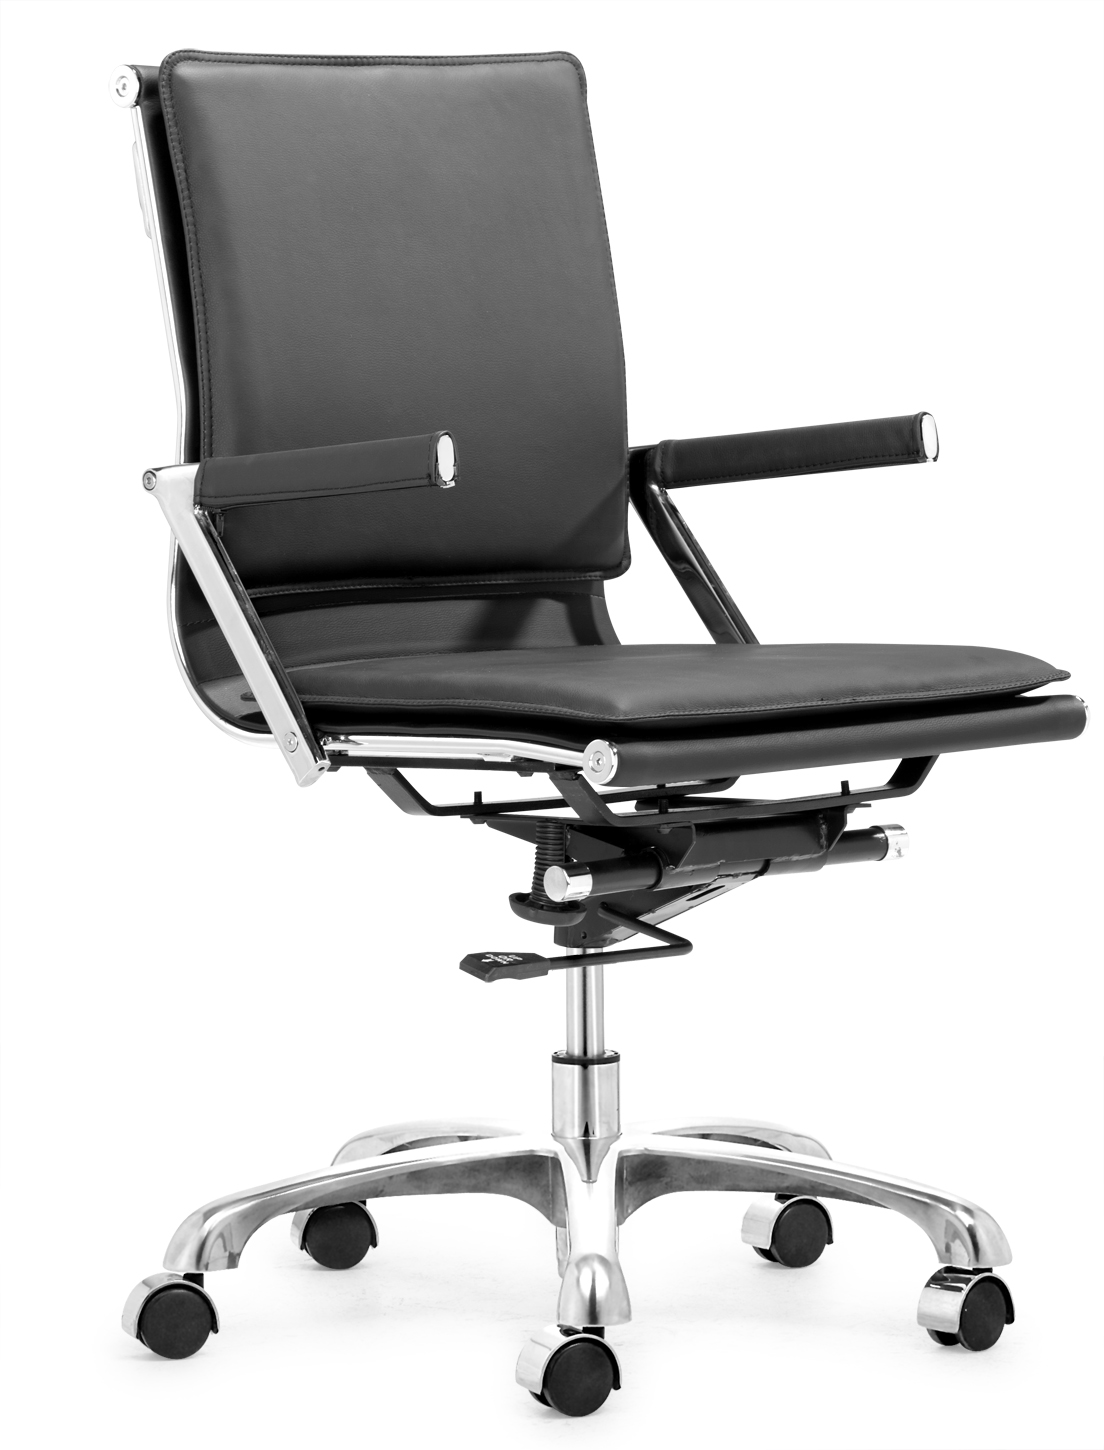 zuo swivel chair and ottoman target lider plus office by modern in chairs